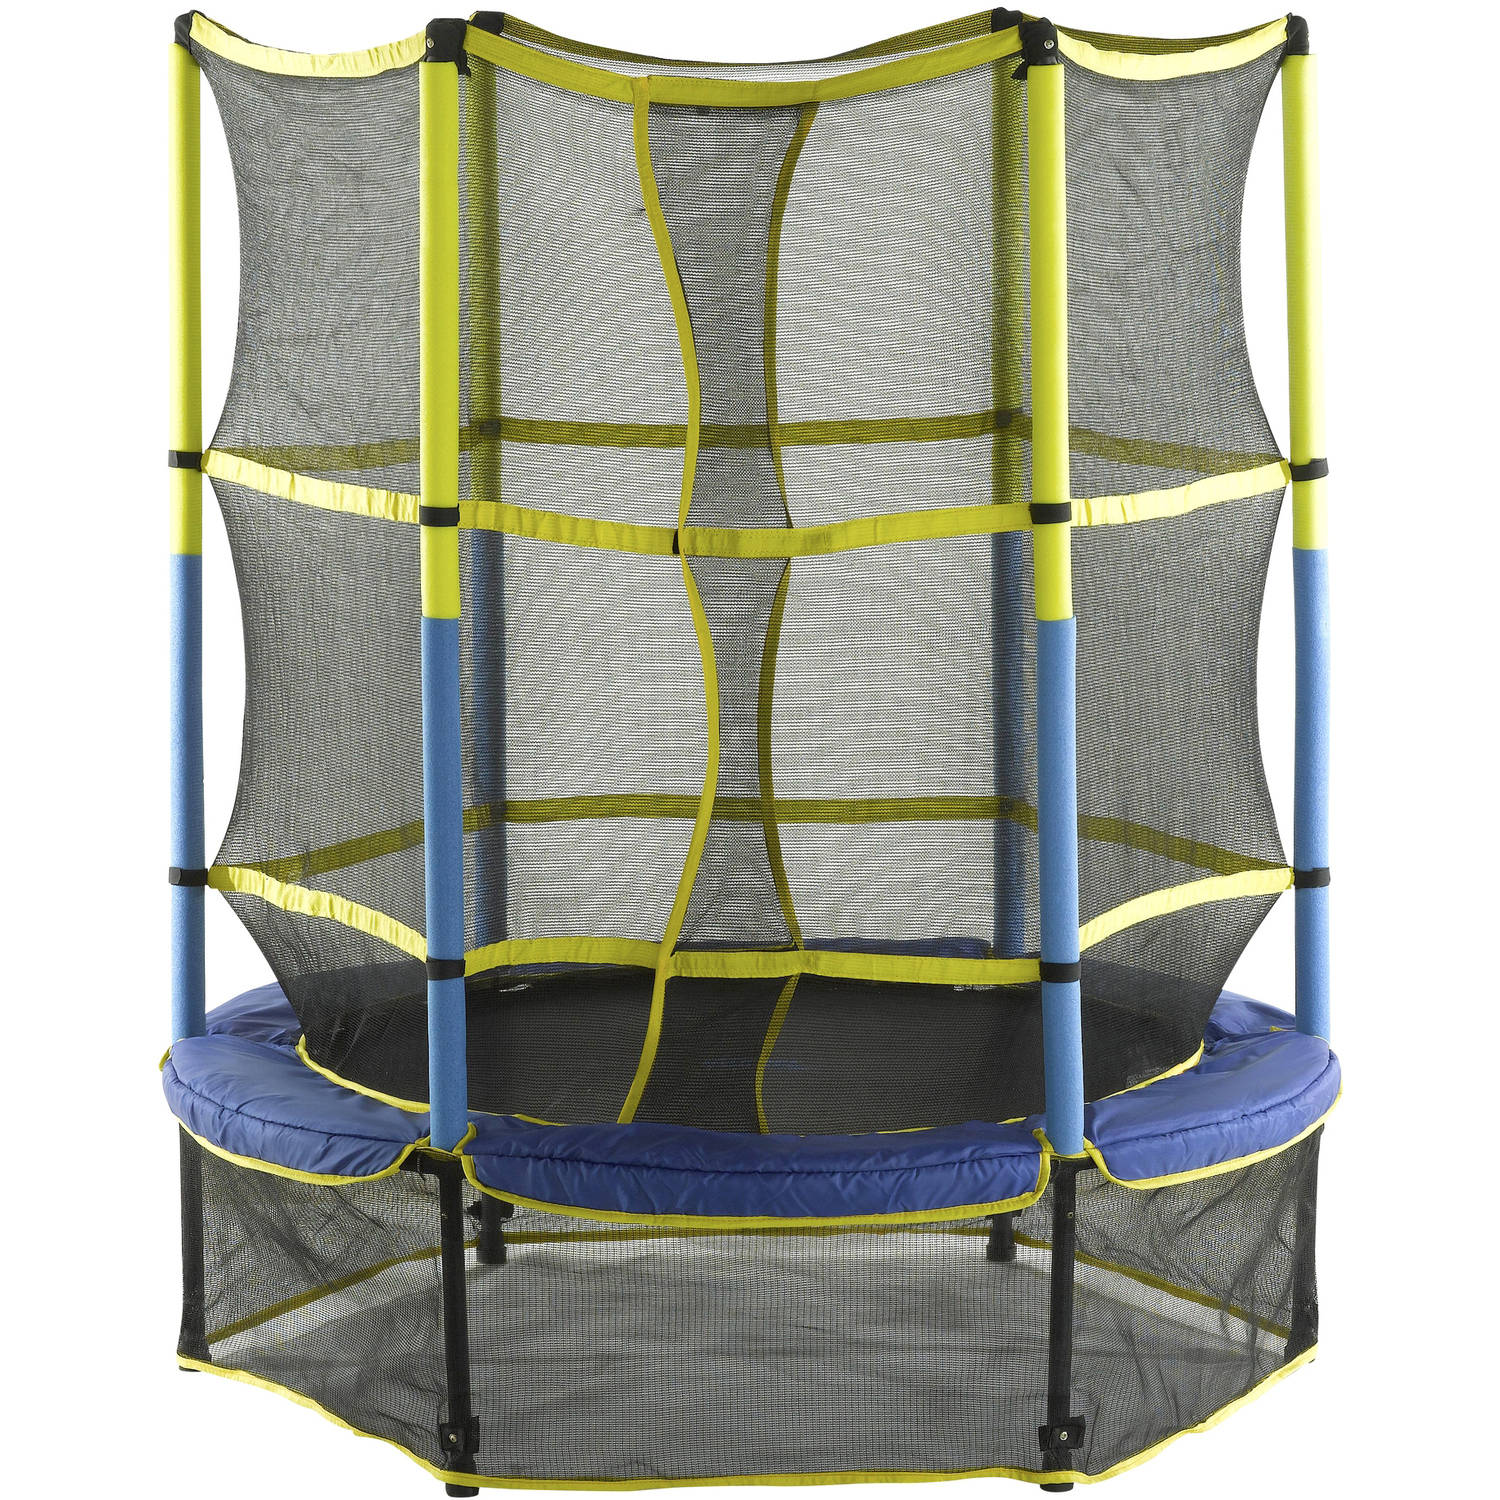 Upper Bounce 55-Inch Trampoline, with Safety Enclosure, Blue